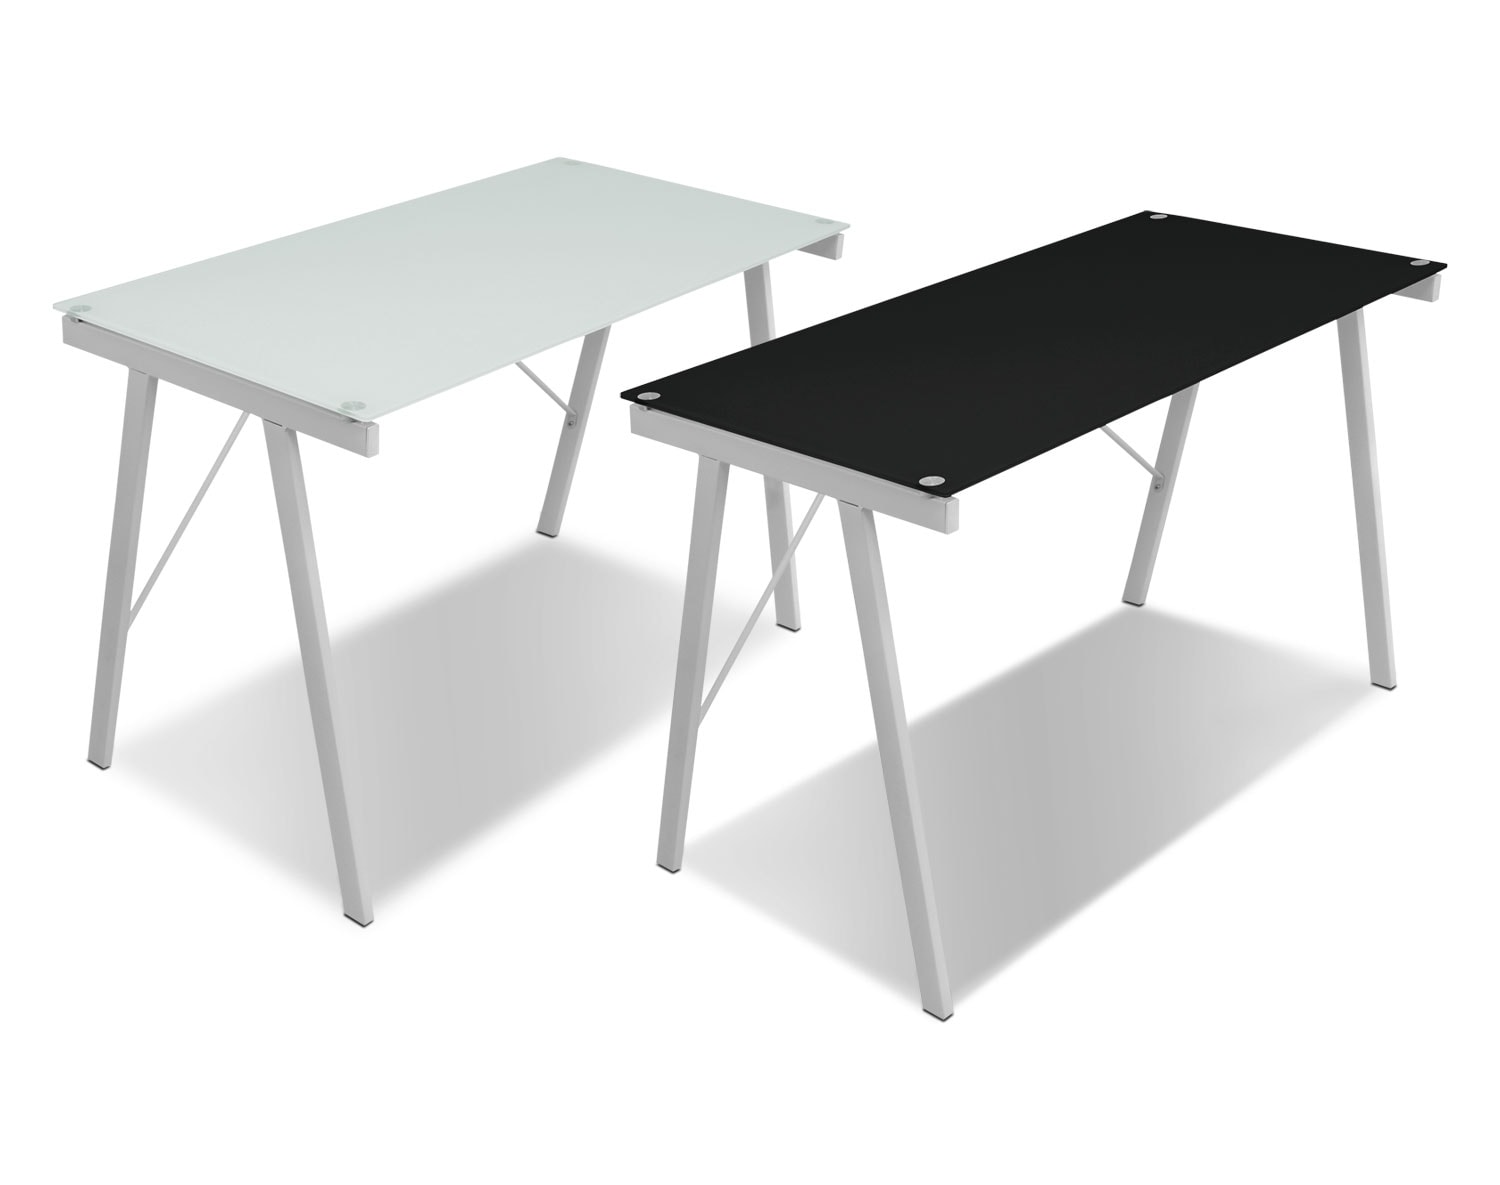 The Zone Desk Collection